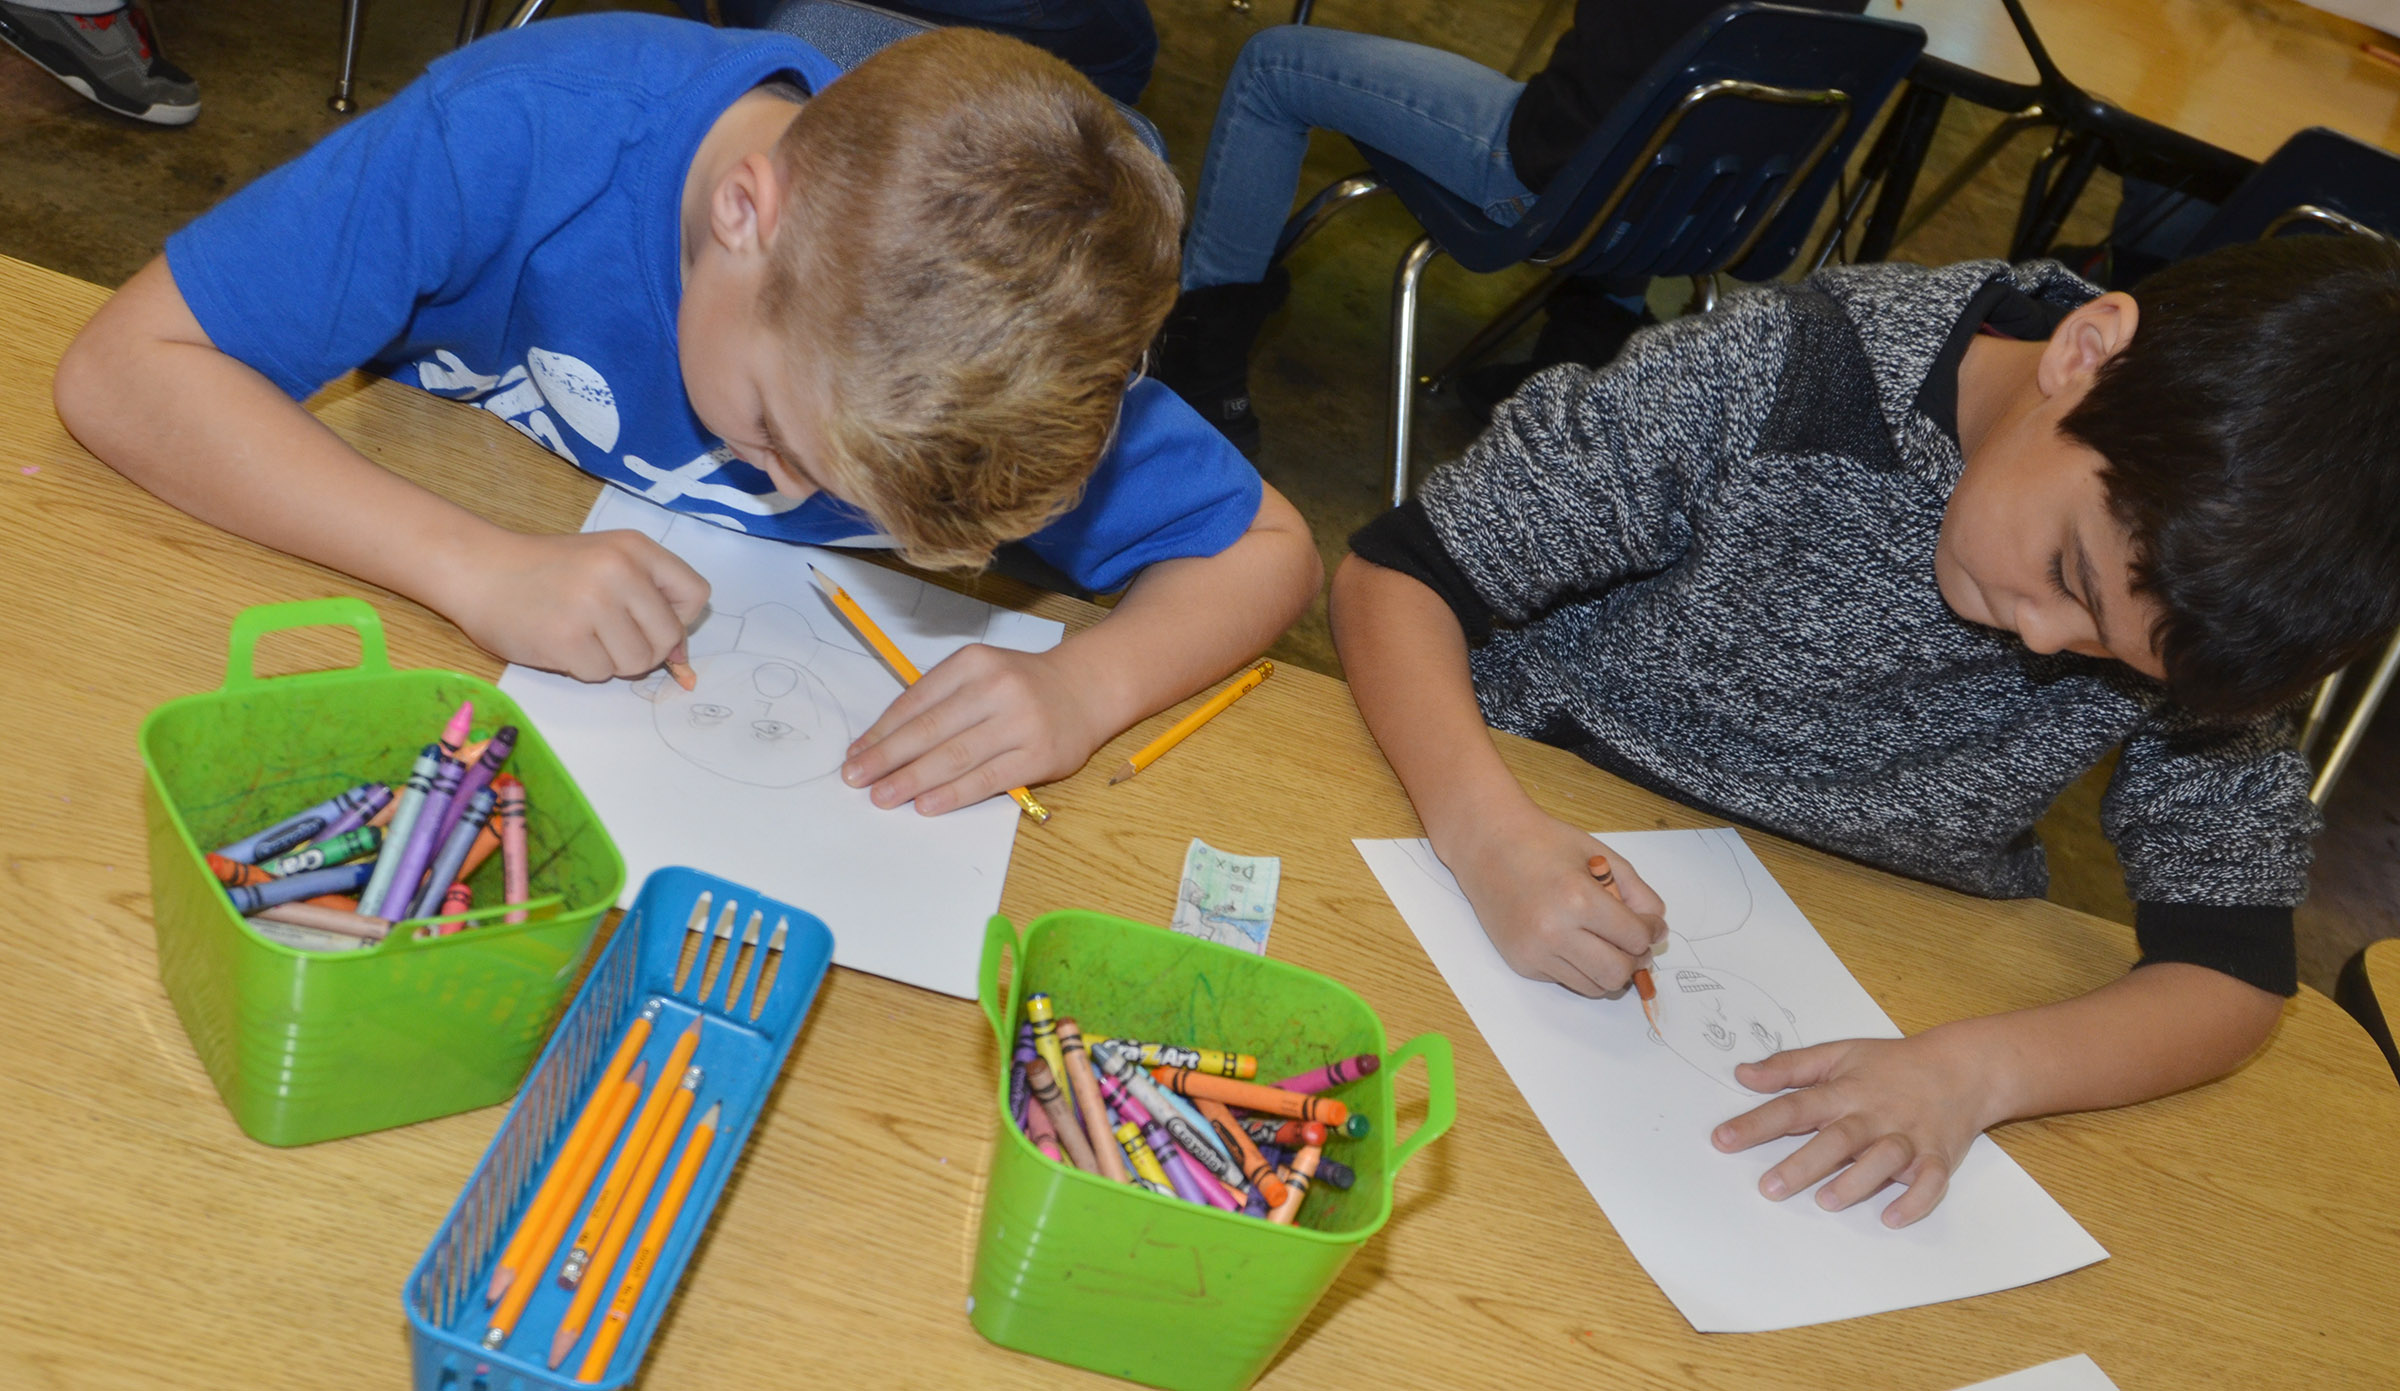 CES second-graders Dax Gray, at left, and Xadrian Fugate color their self-portraits.